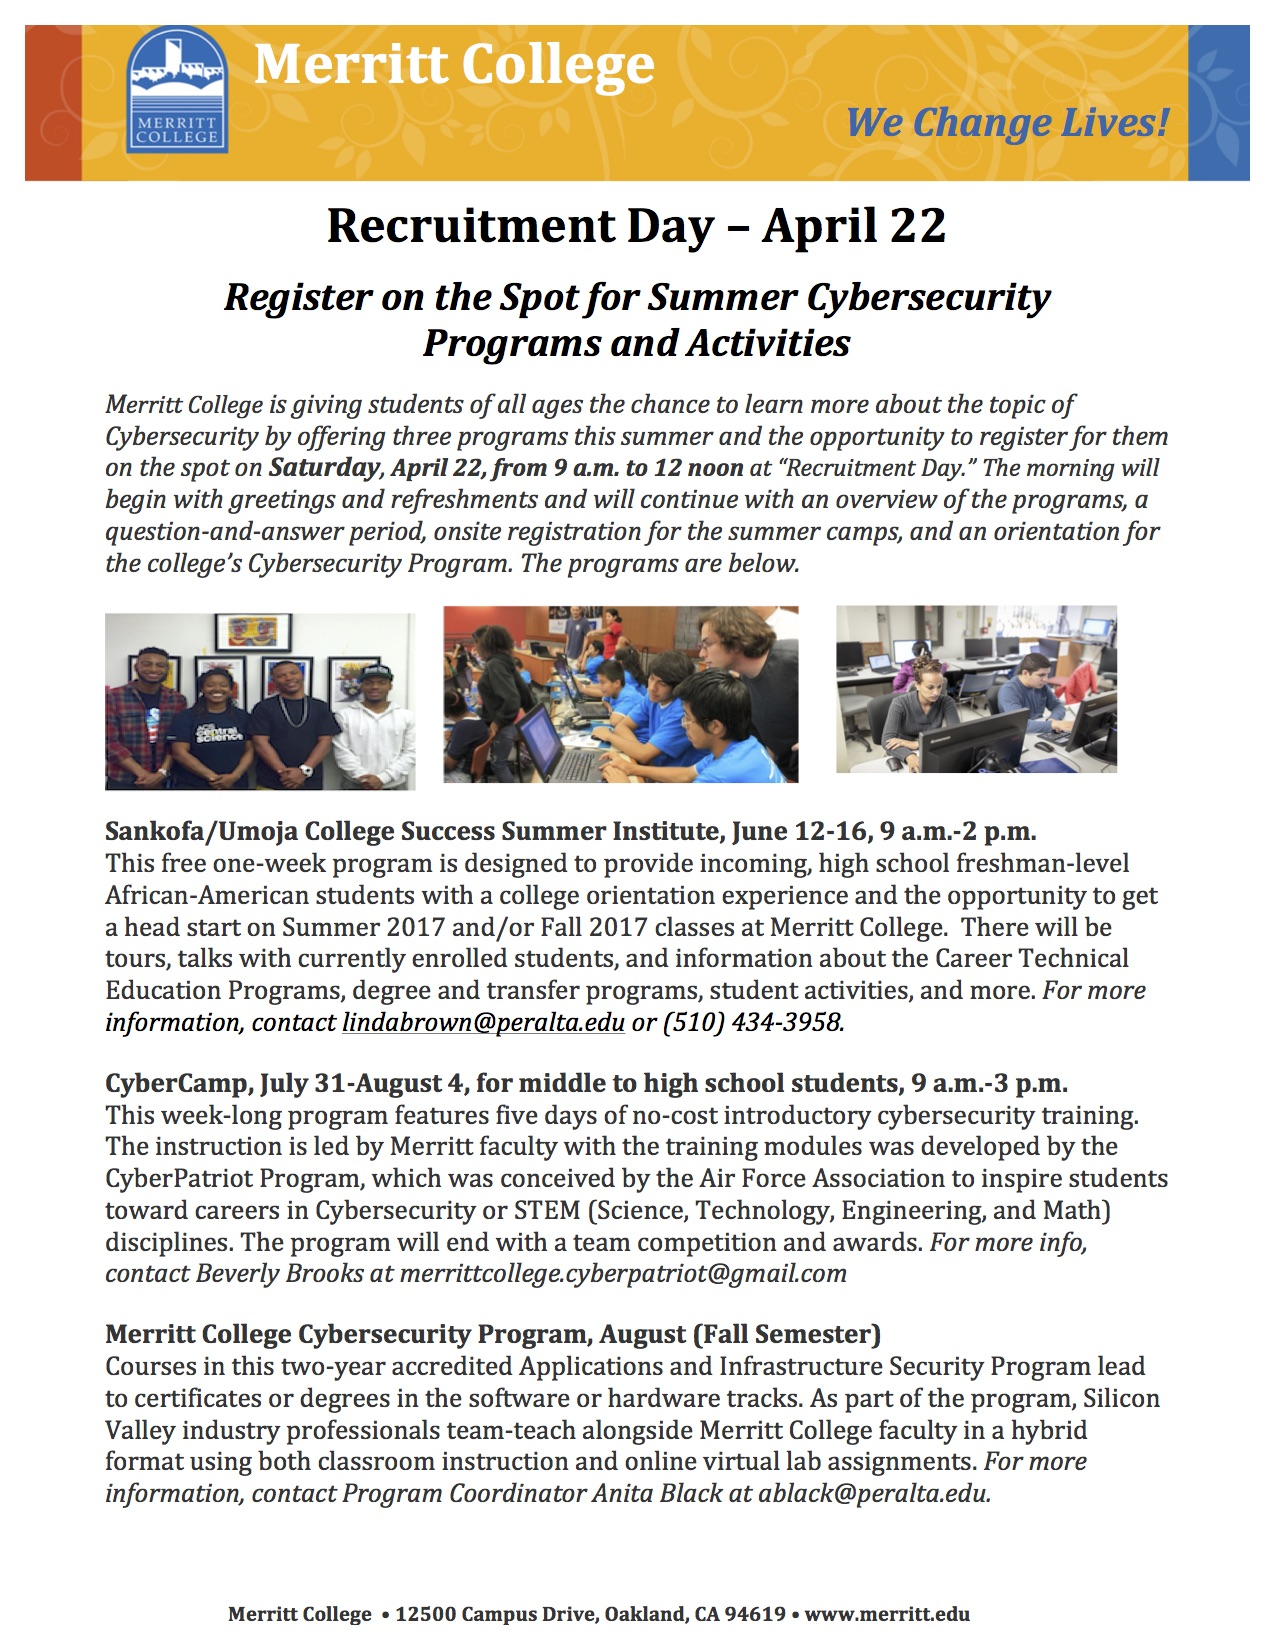 Recruitment Day On April 22 In P 307 Offers Chance To Sign Up For